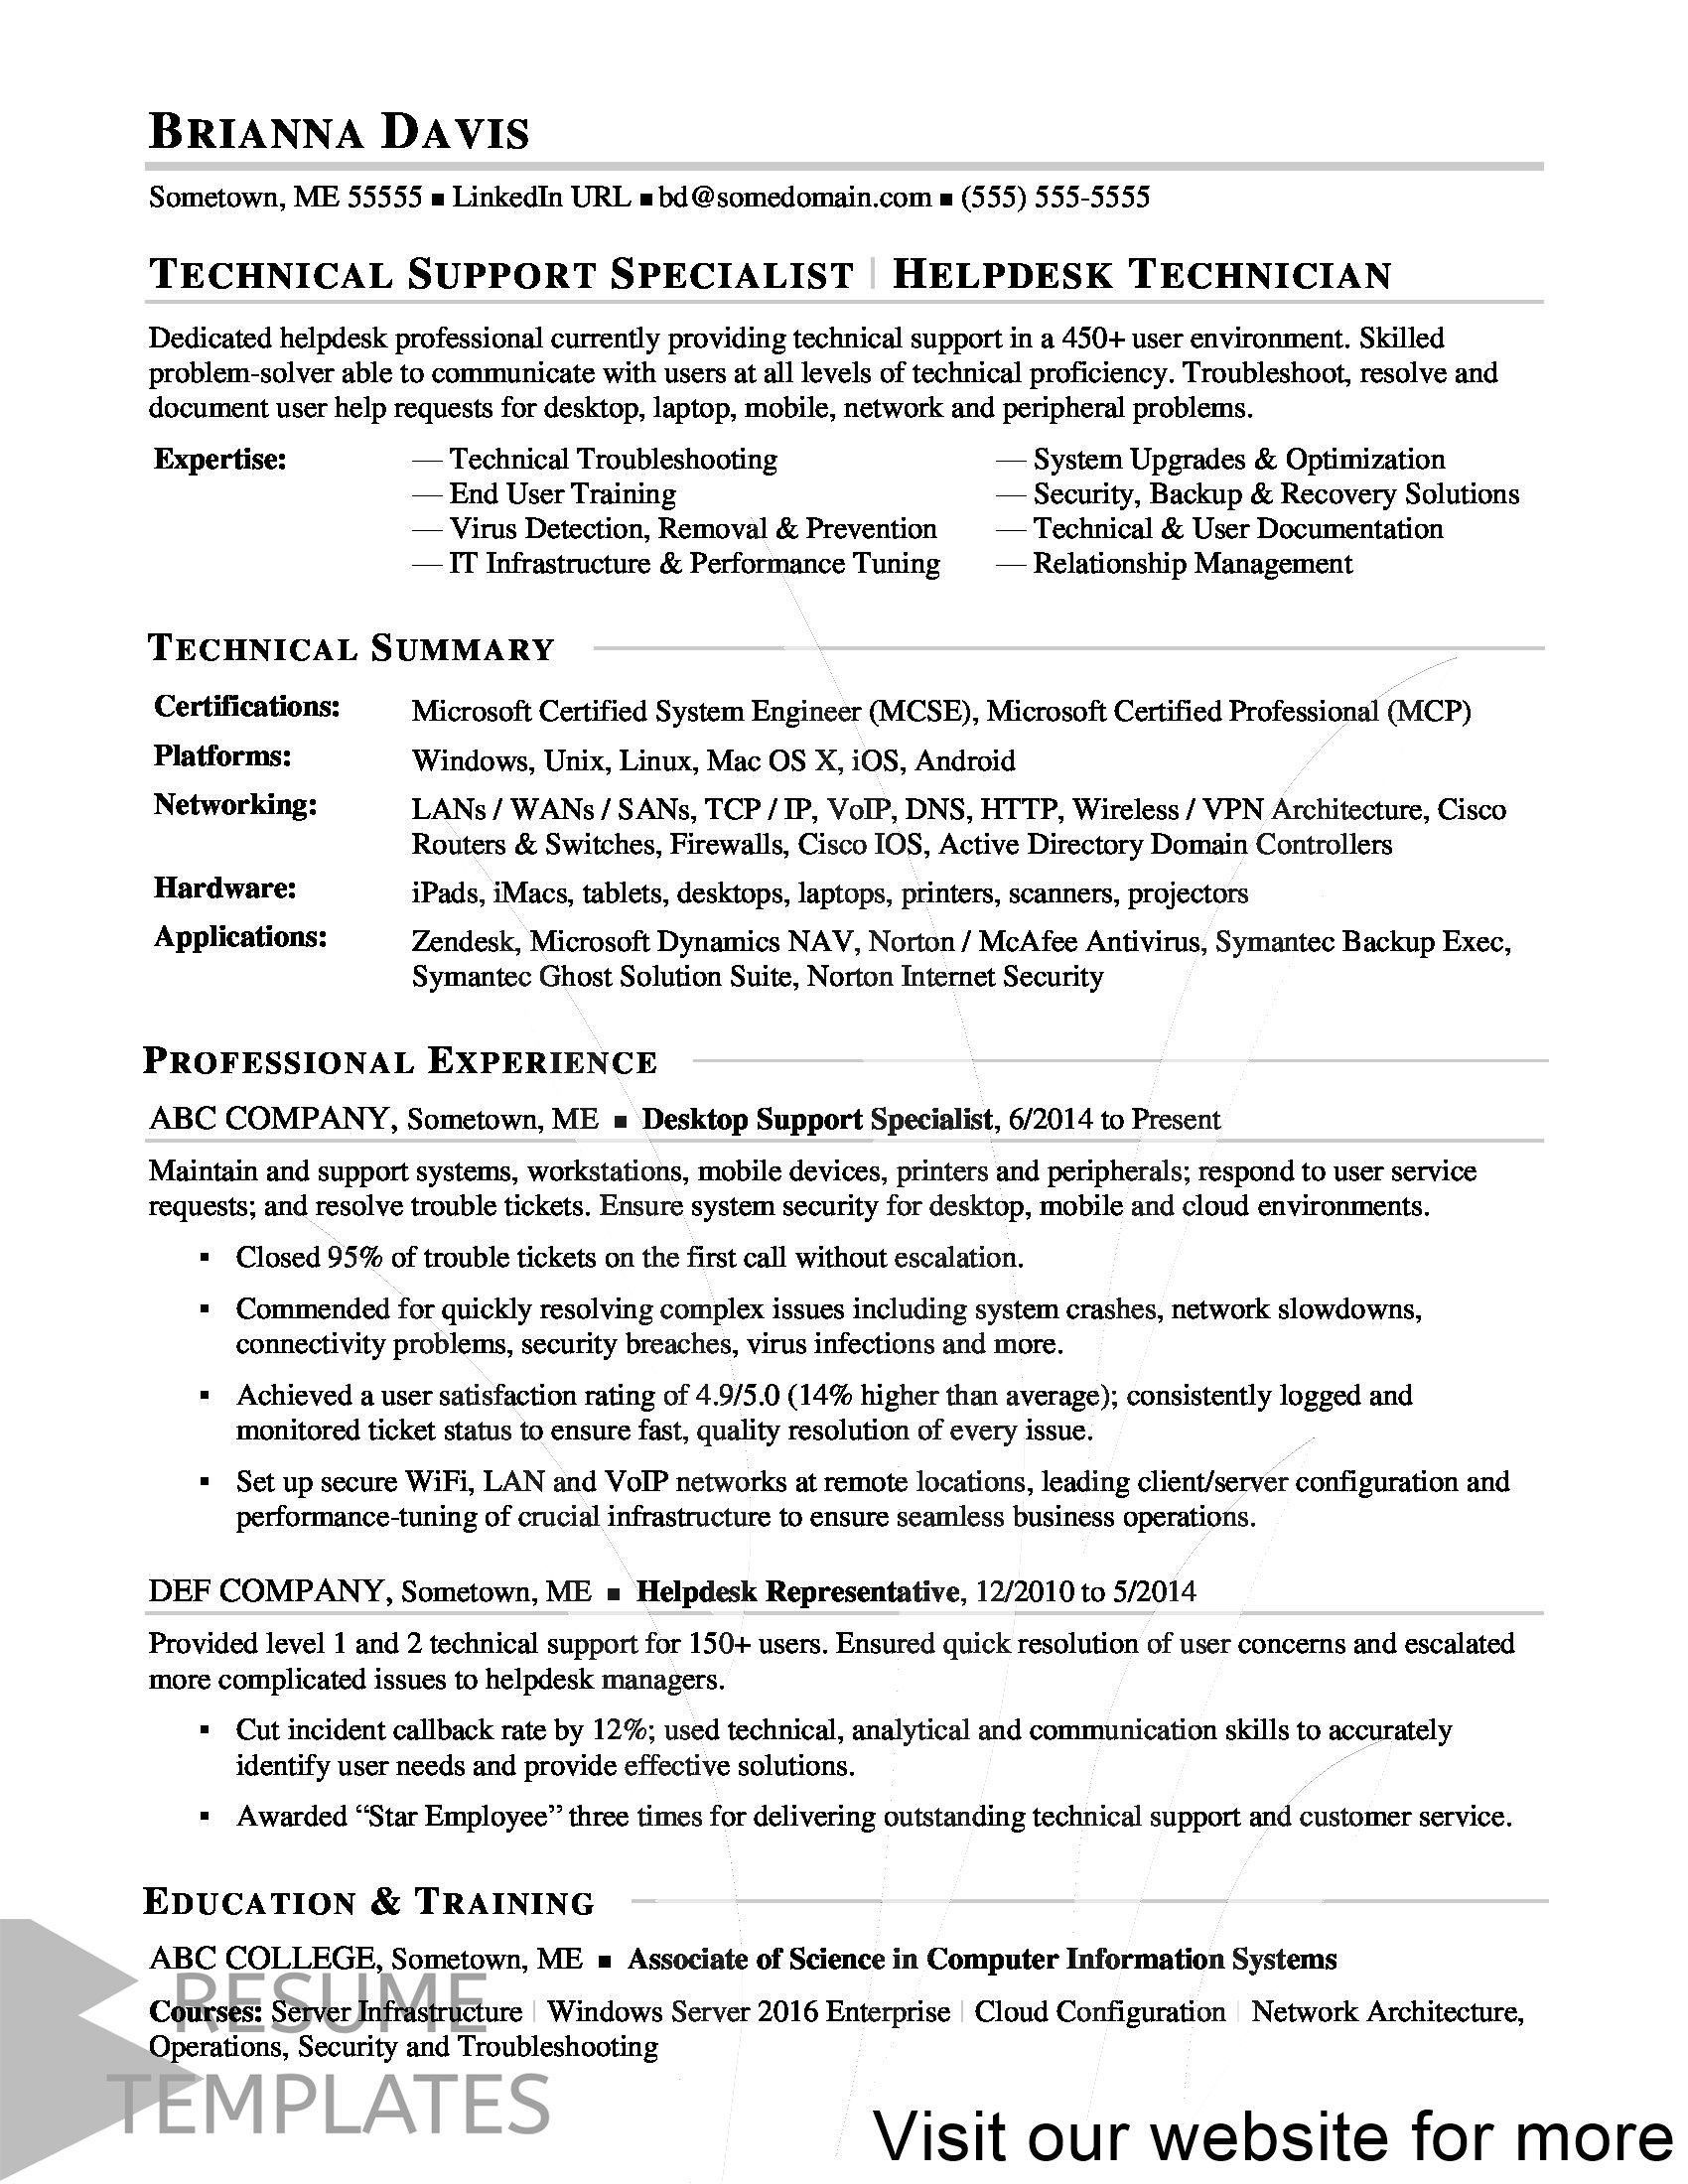 combination resume template free in 2020 Resume examples